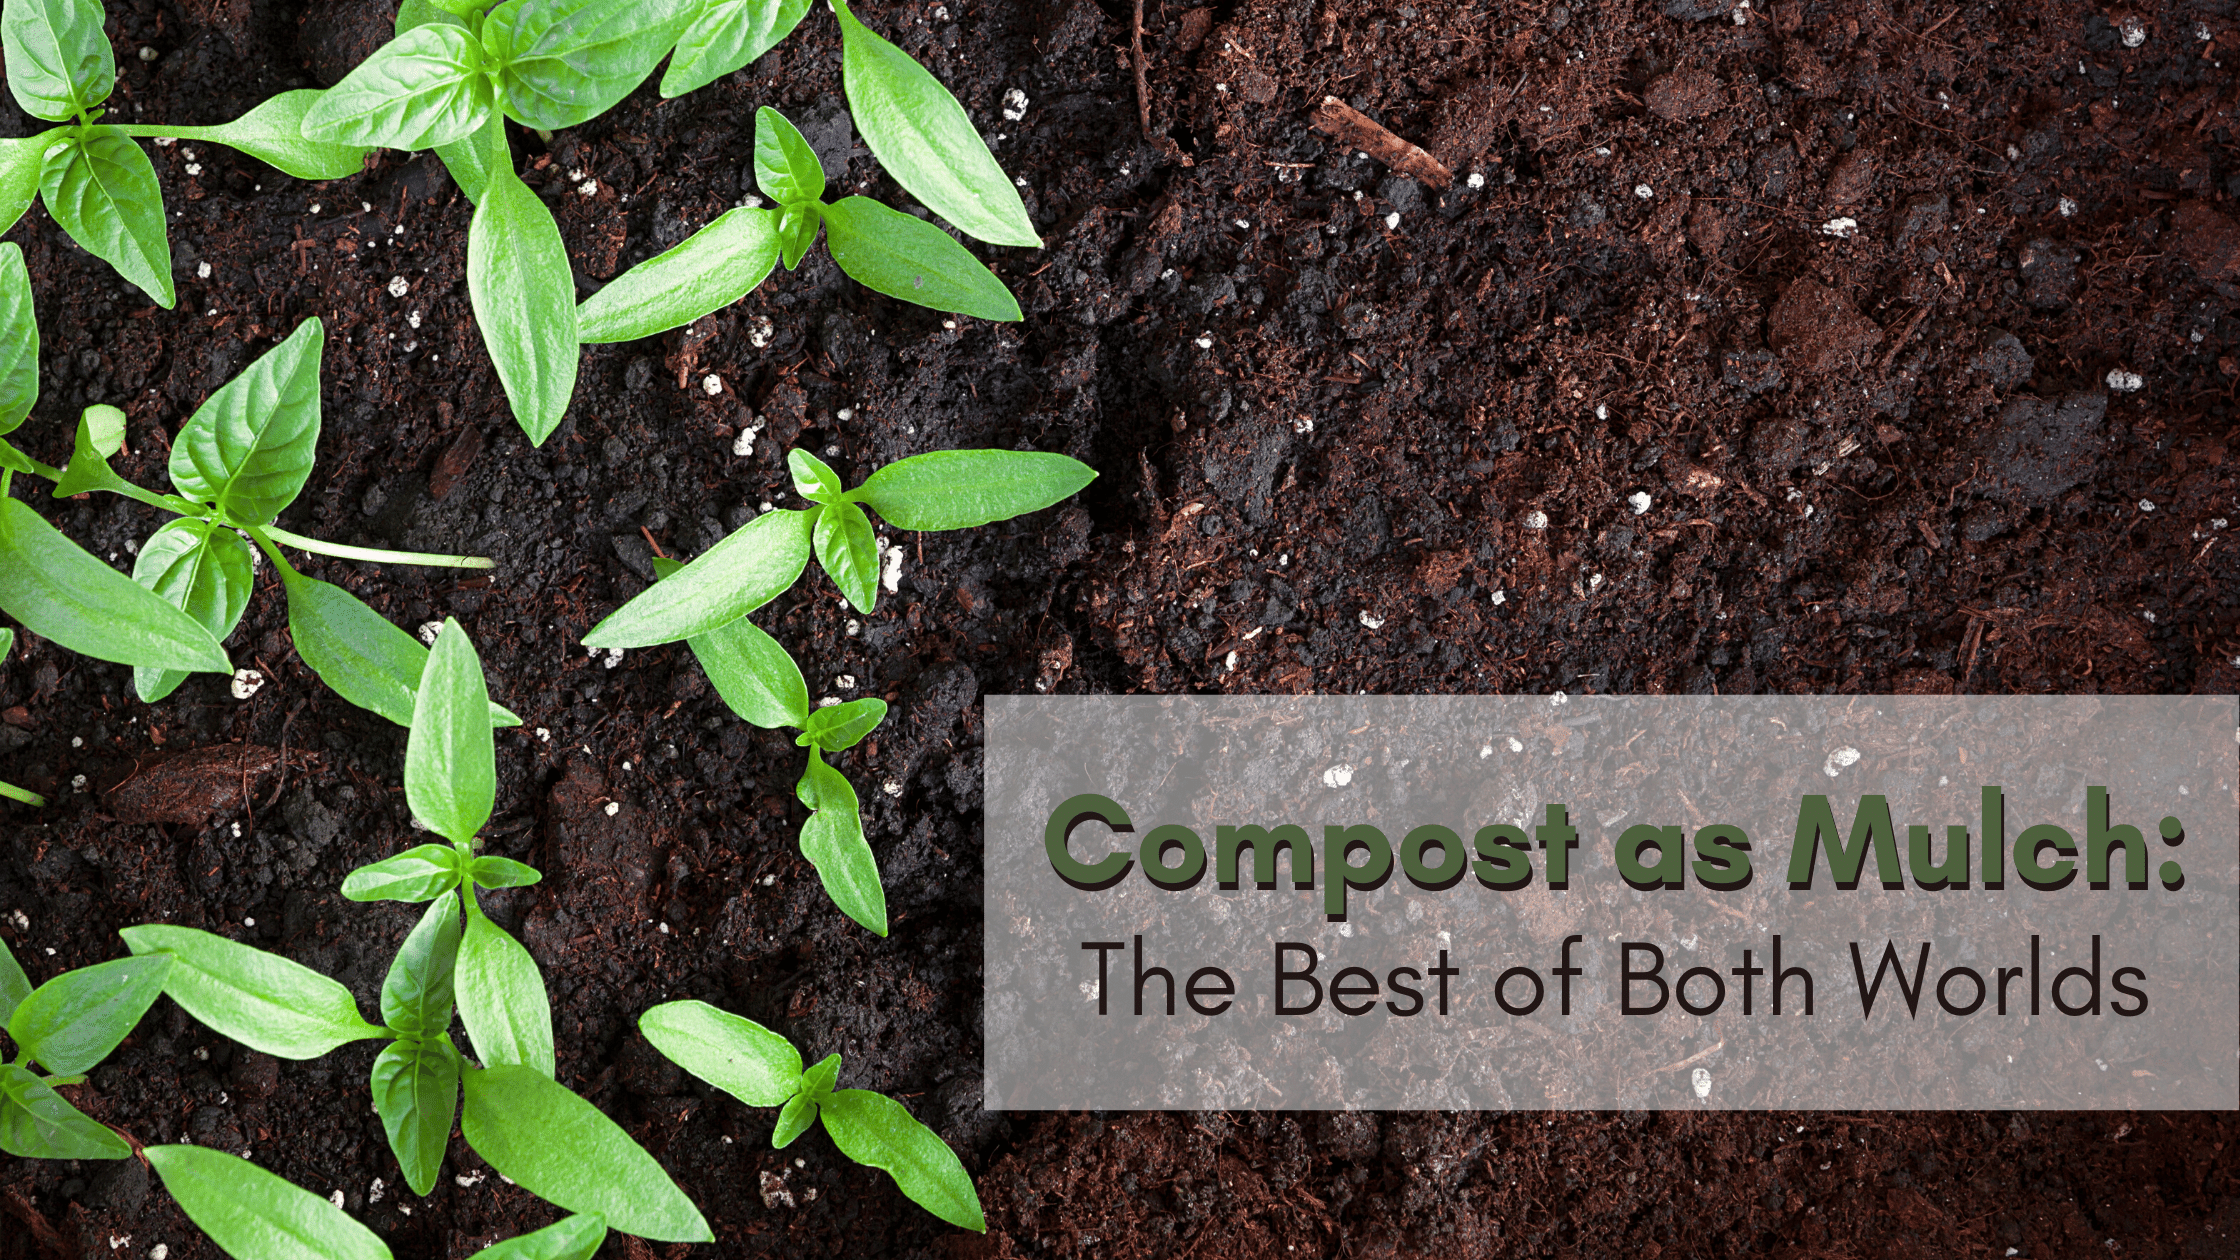 Using compost as mulch is the best way to get your garden green.